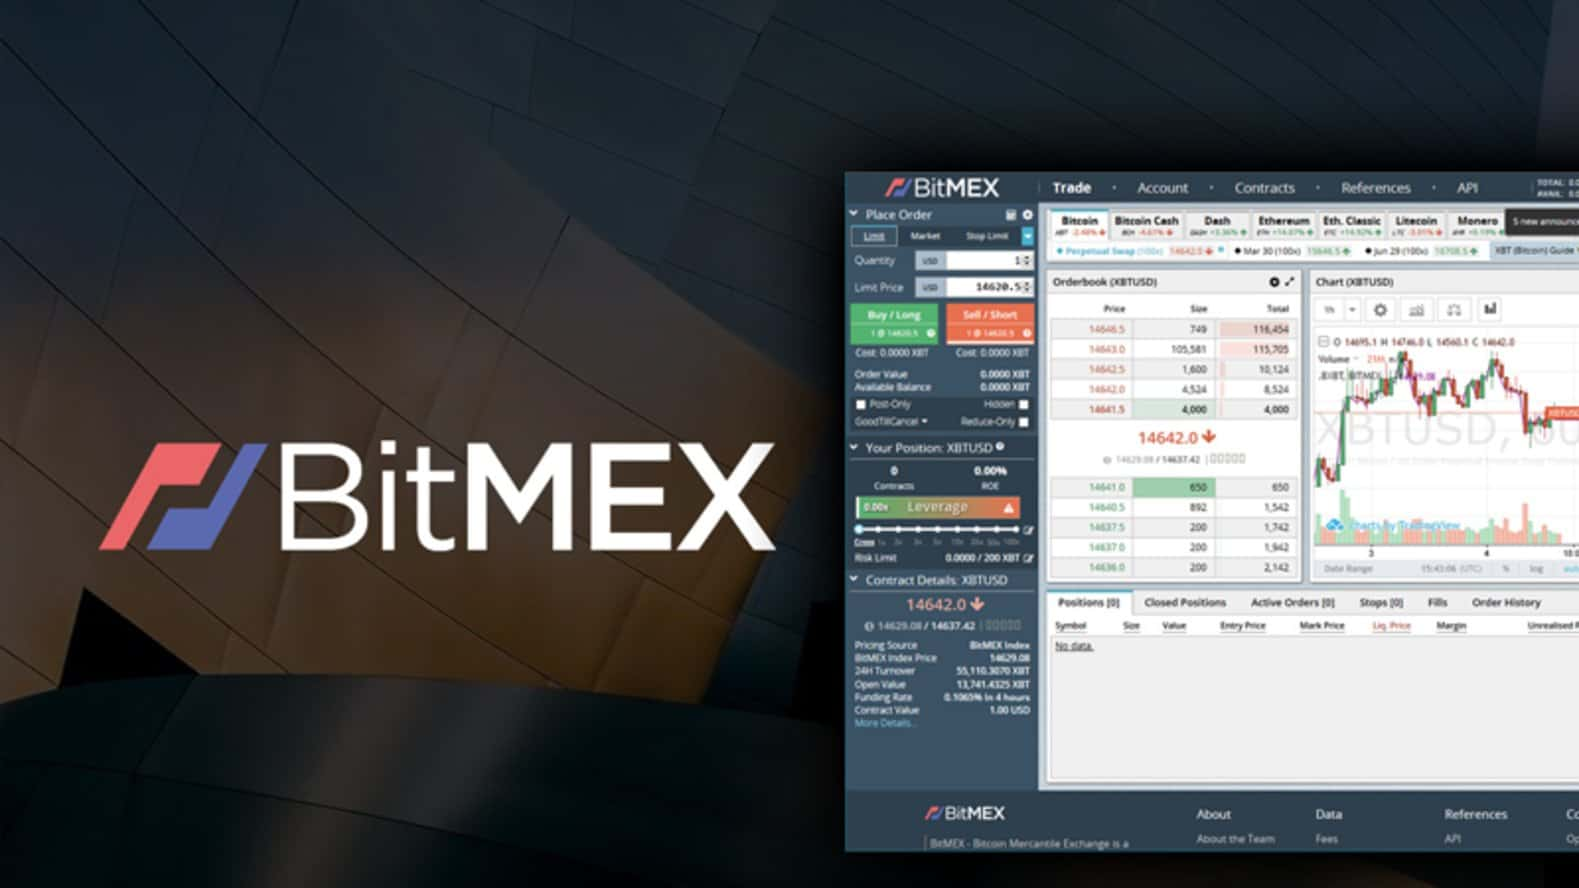 BitMEX Makes KYC Mandatory for All Users